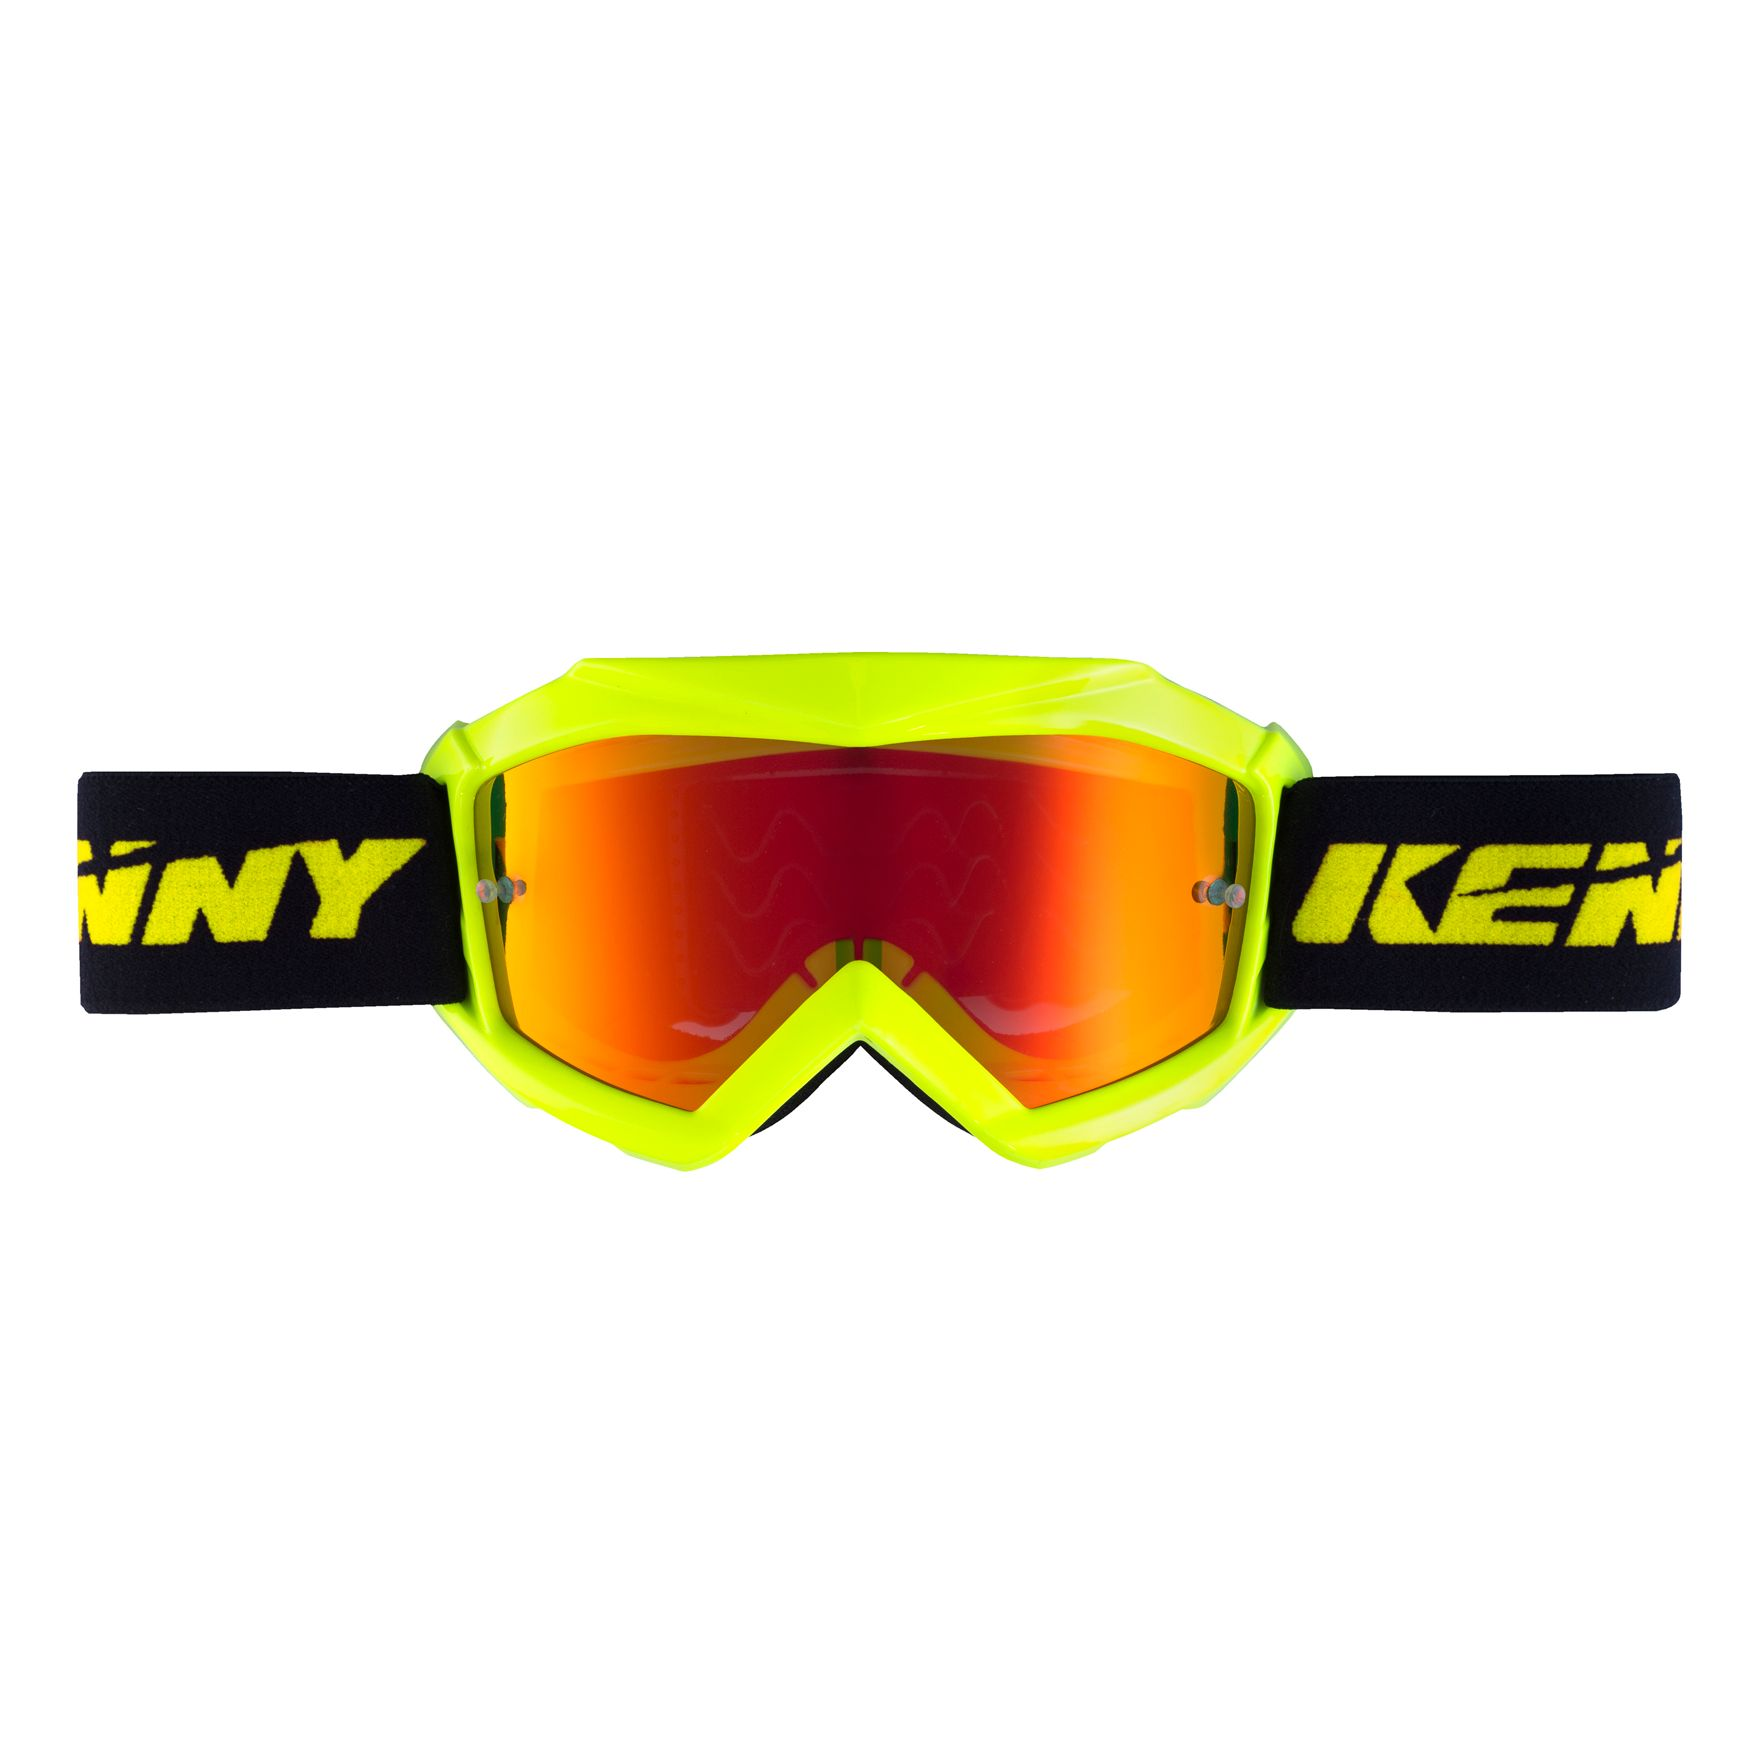 Masque cross Kenny KID TRACK + - JAUNE FLUO